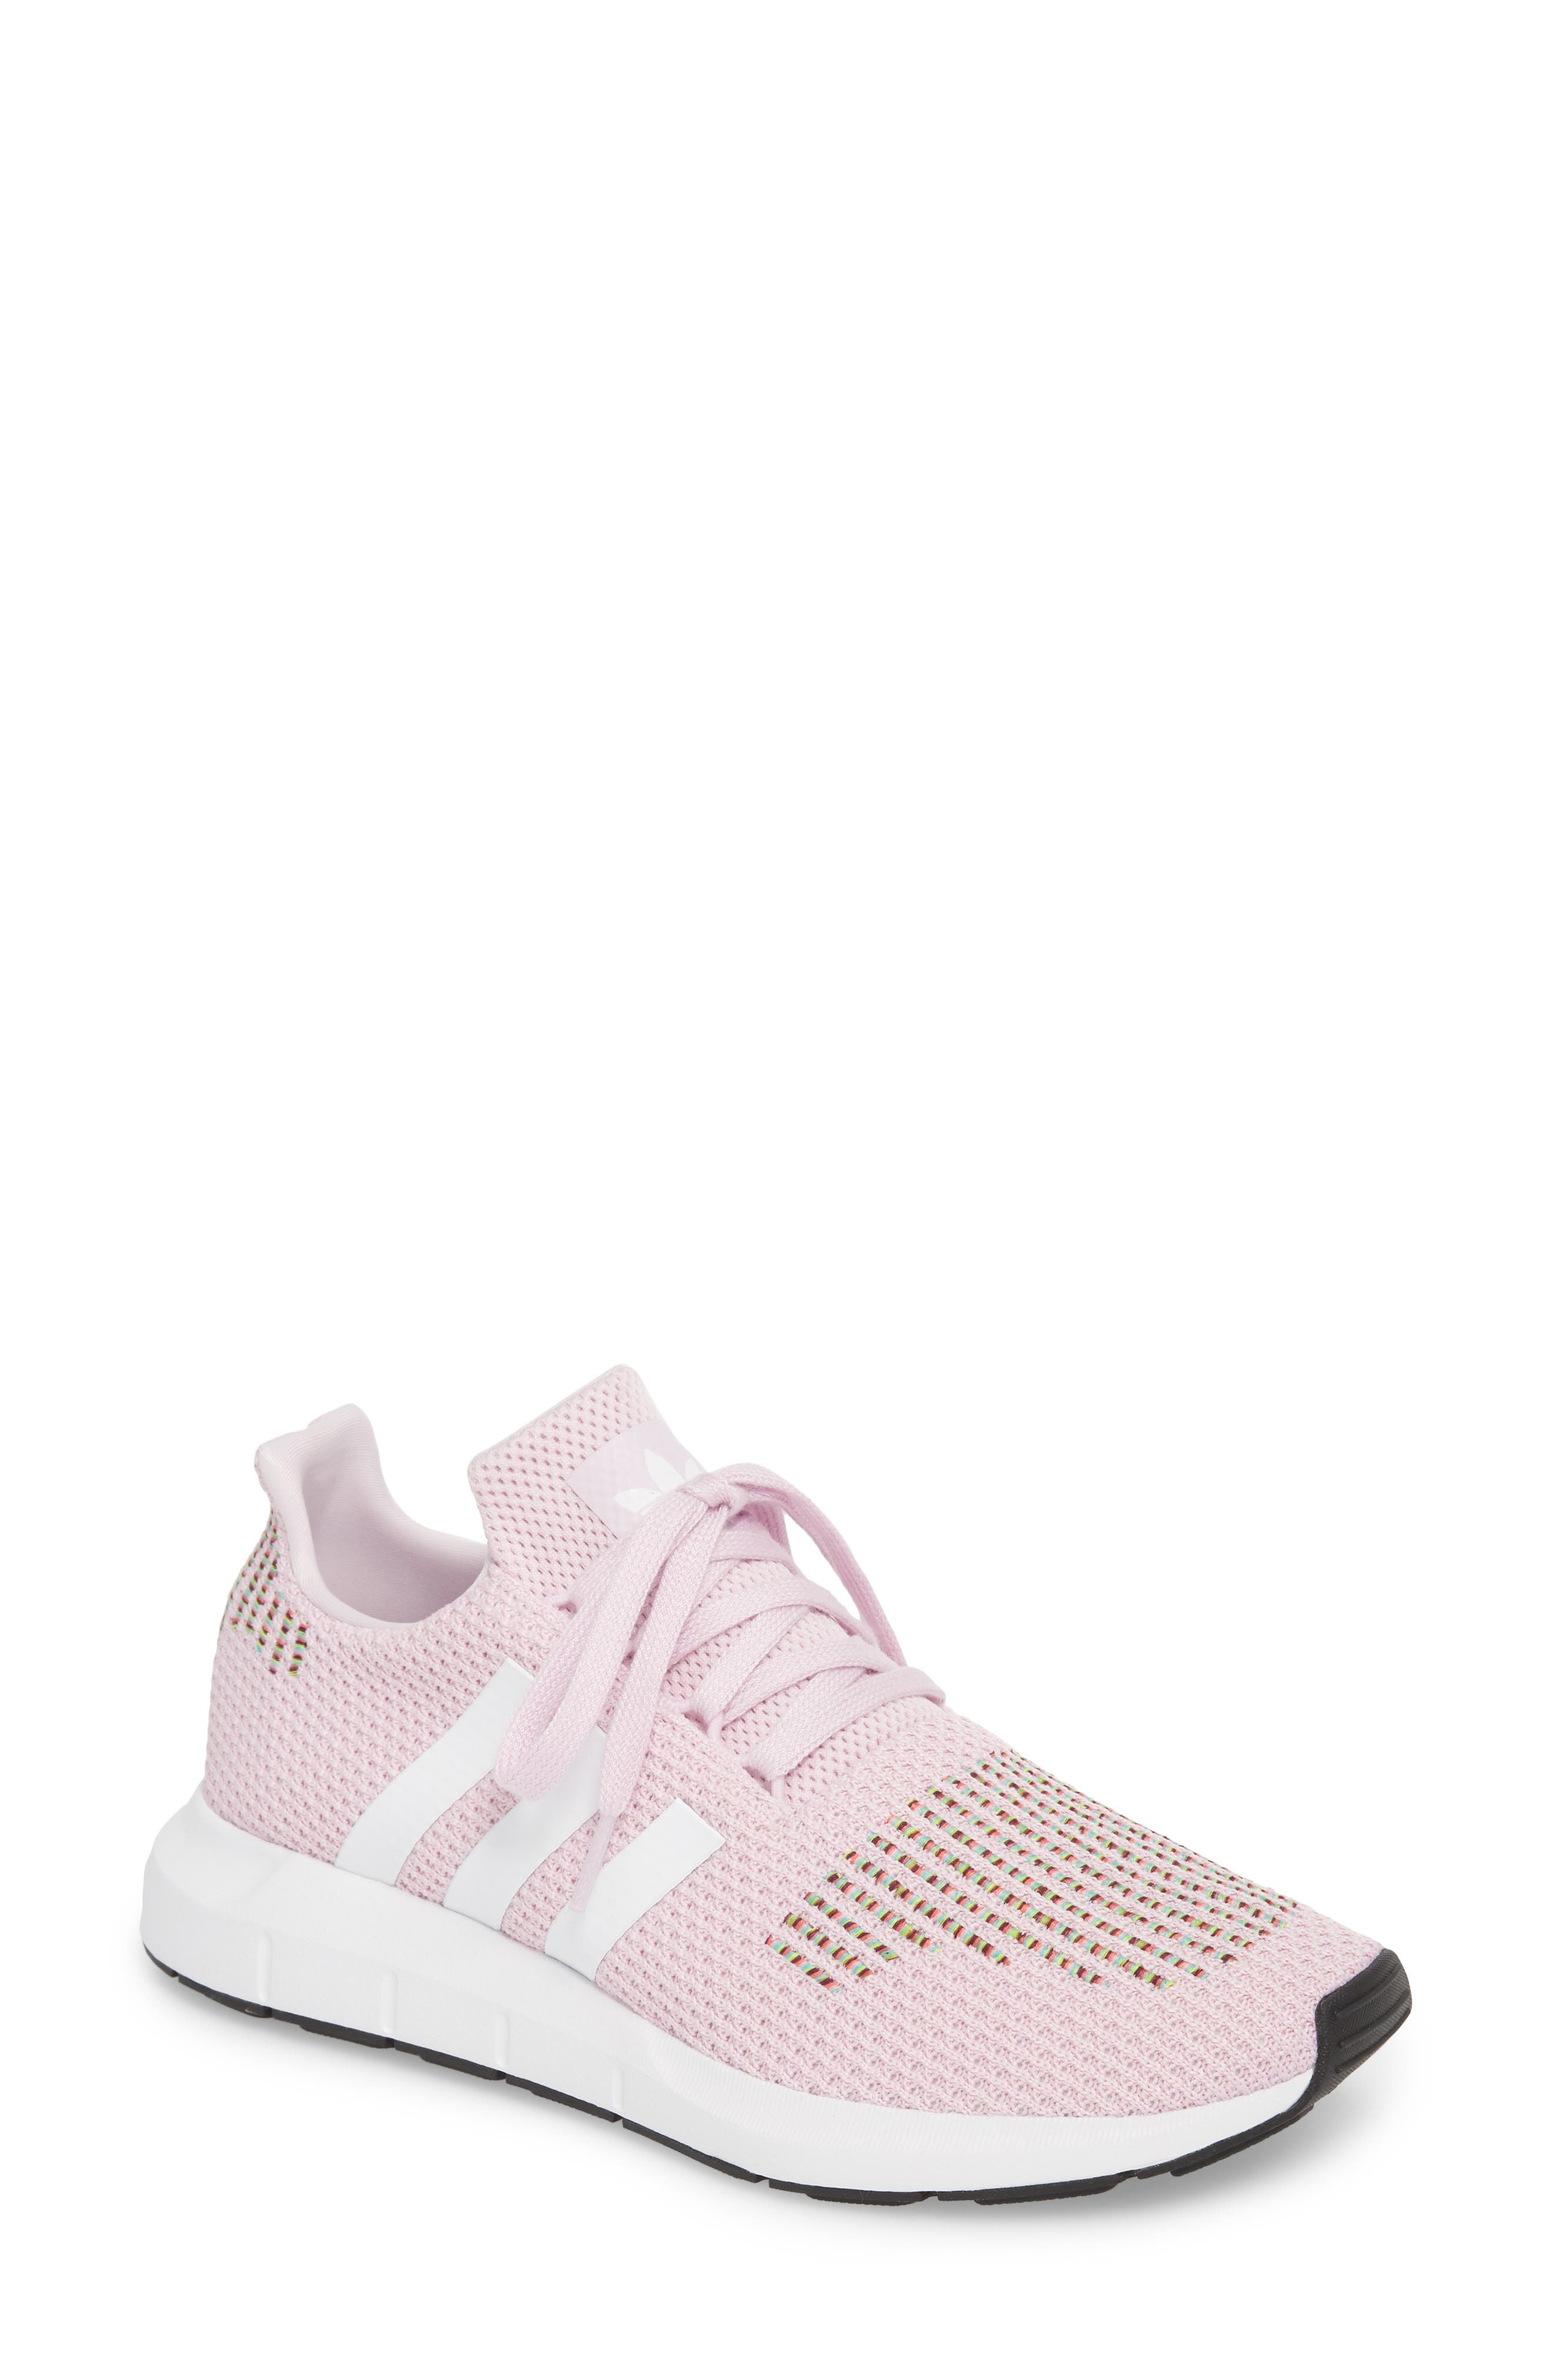 Swift Run Sneaker,                         Main,                         color, Aero Pink/ White/ Core Black